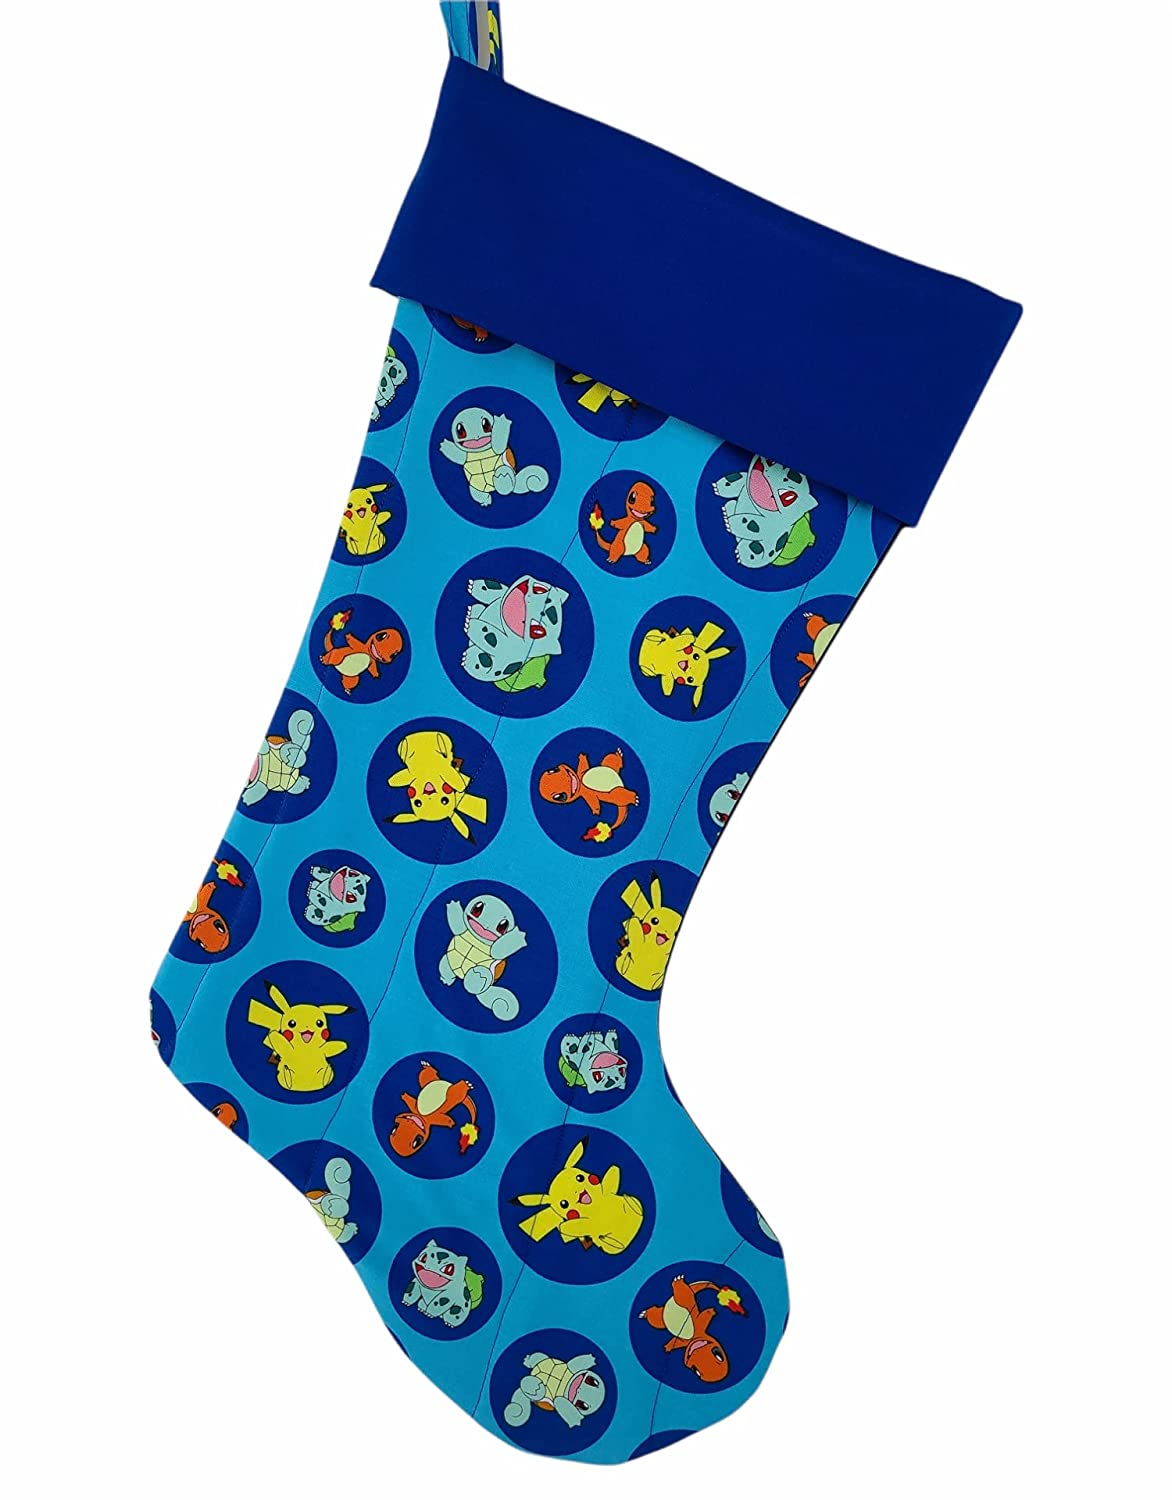 Cartoon Pikachu And Friends Indefinitely On Blue Max 44% OFF Stocking Quilted Christmas